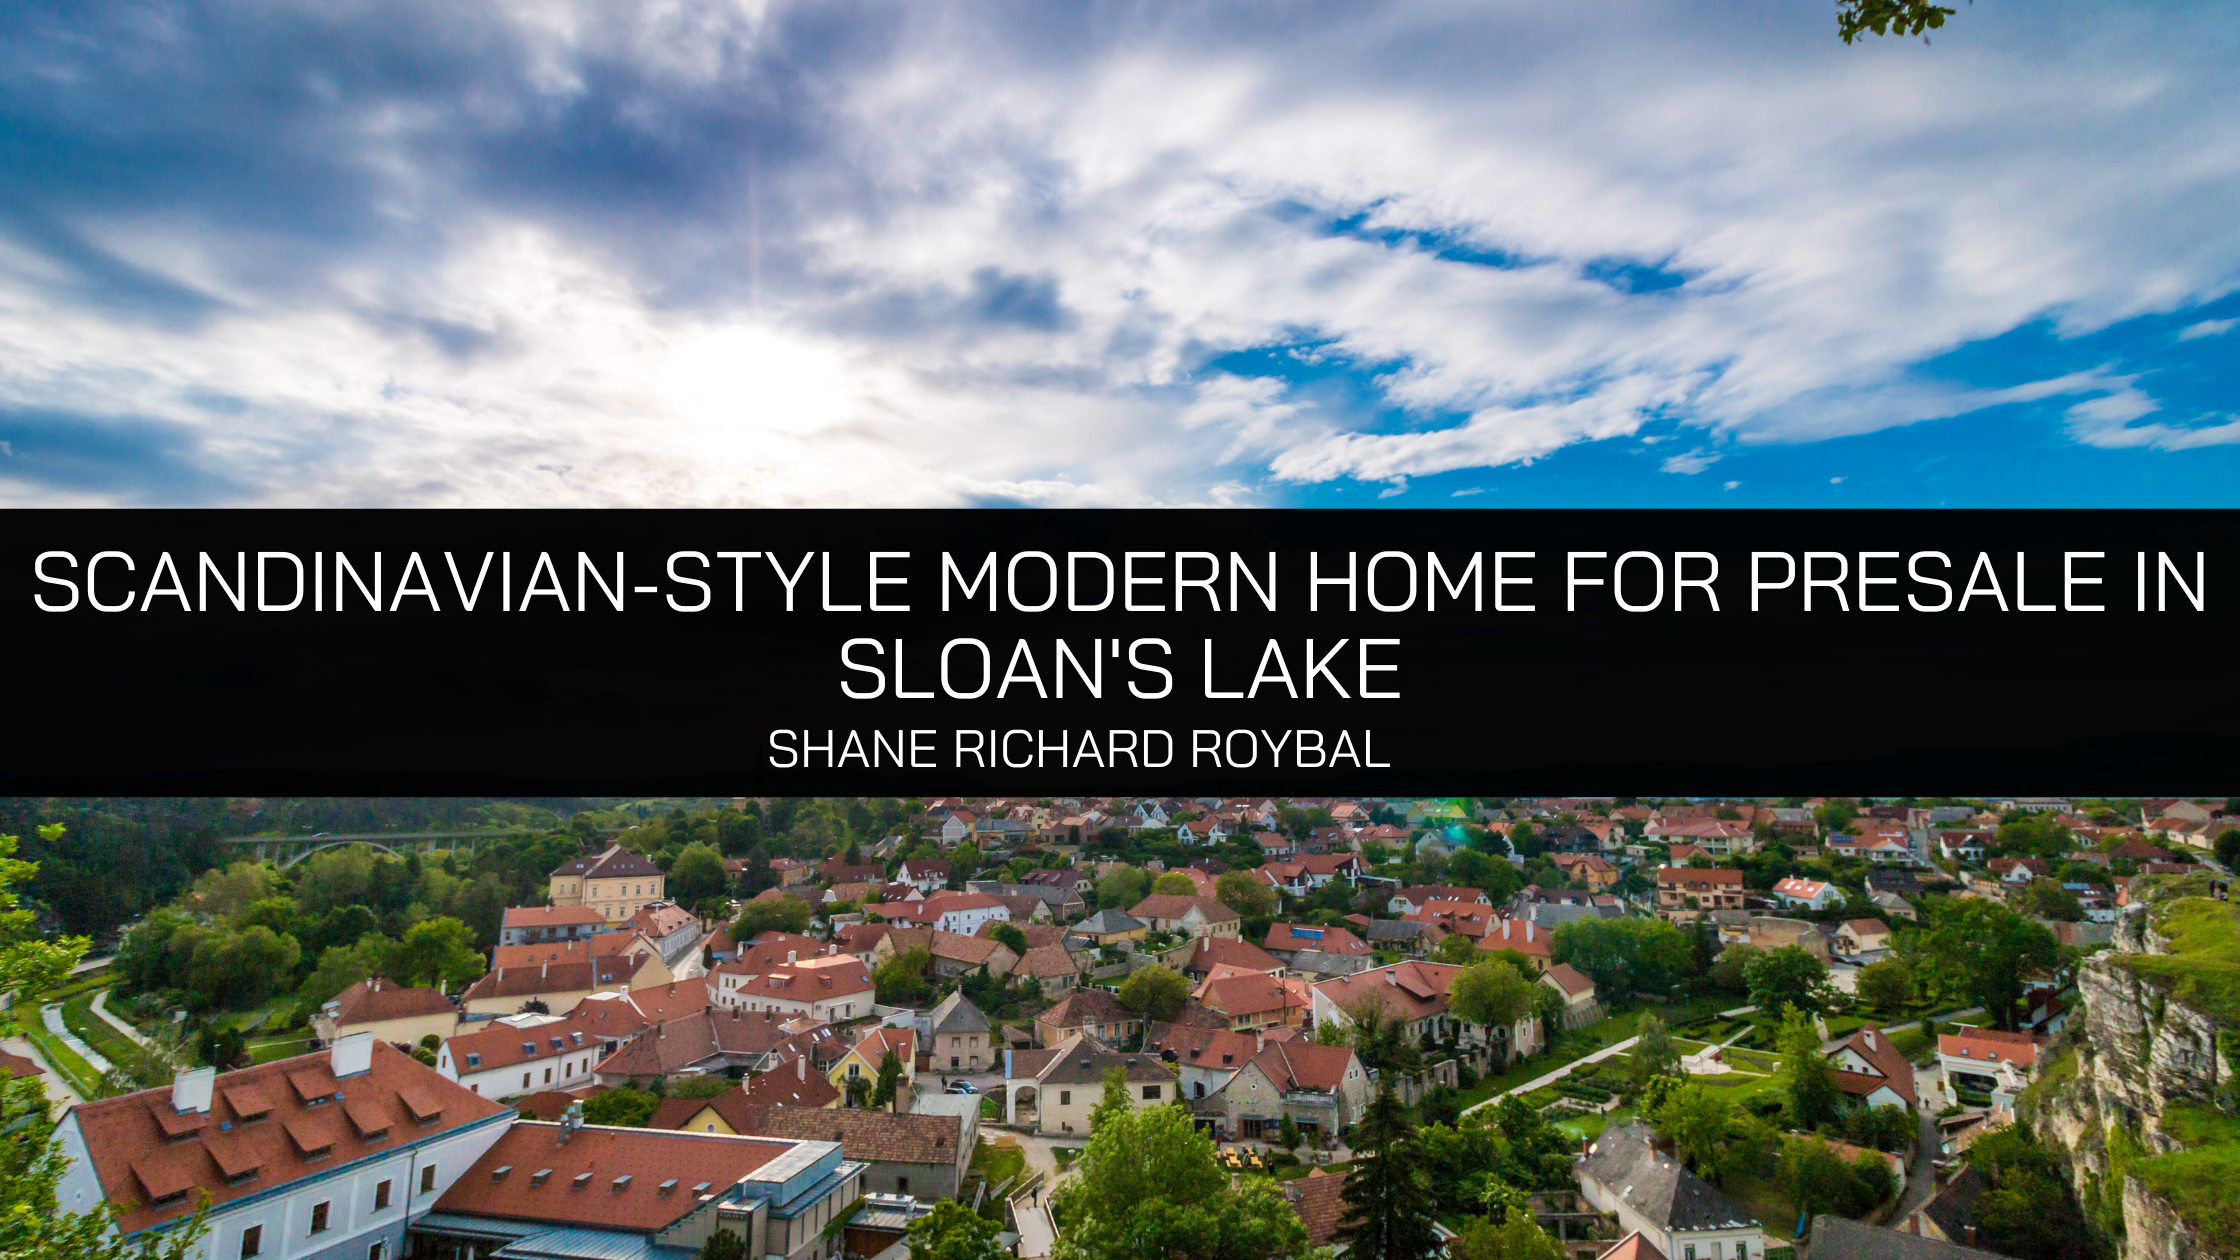 Shane Richard Roybal presents Scandinavian-style modern home for presale in Sloan's Lake